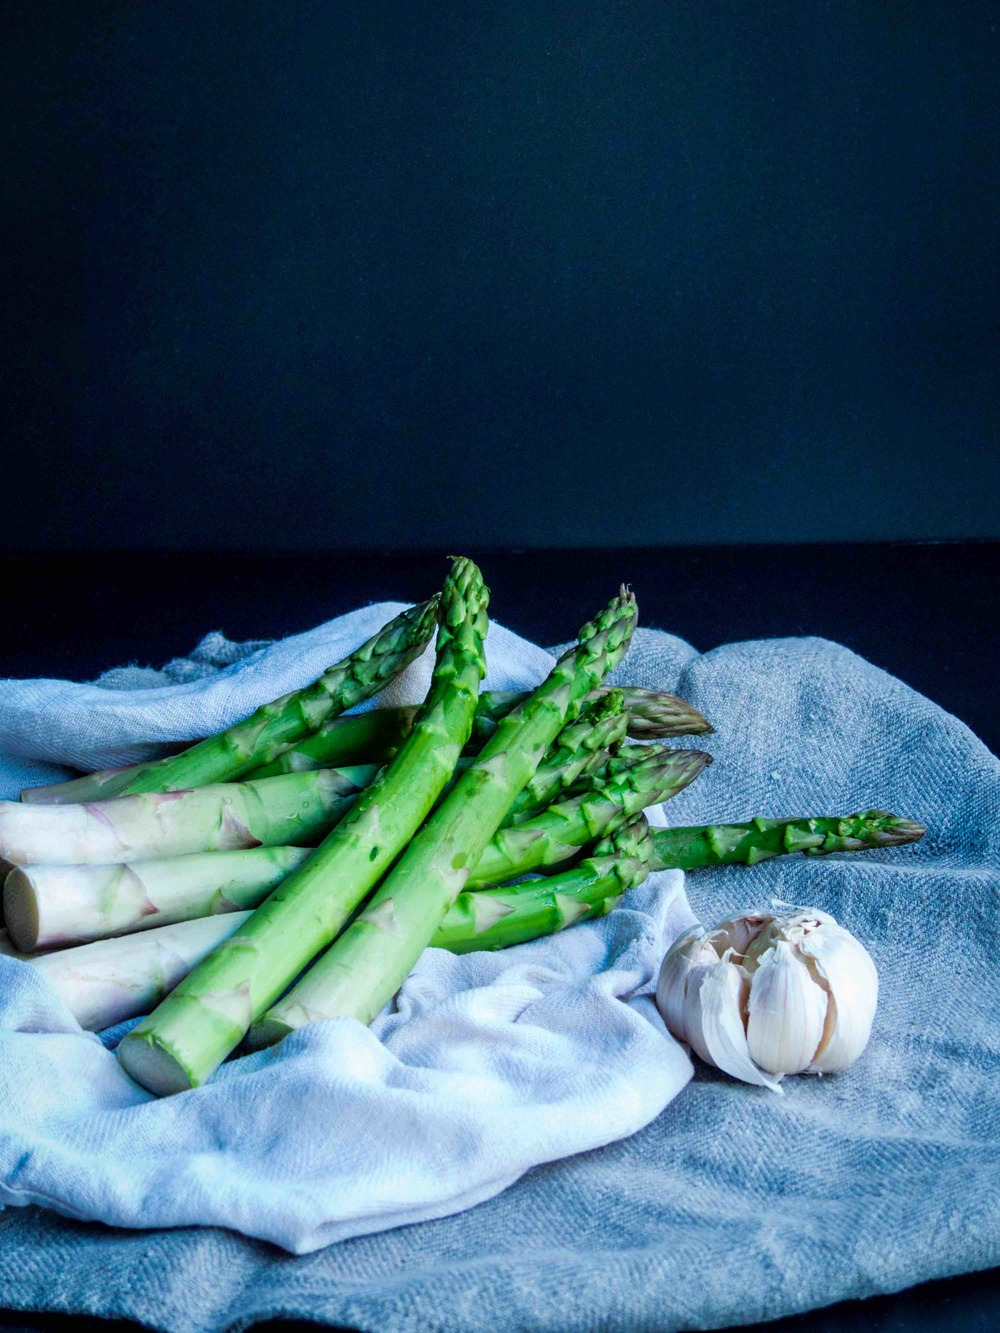 A pound of asparagus can turn into two simple and delicious meals.